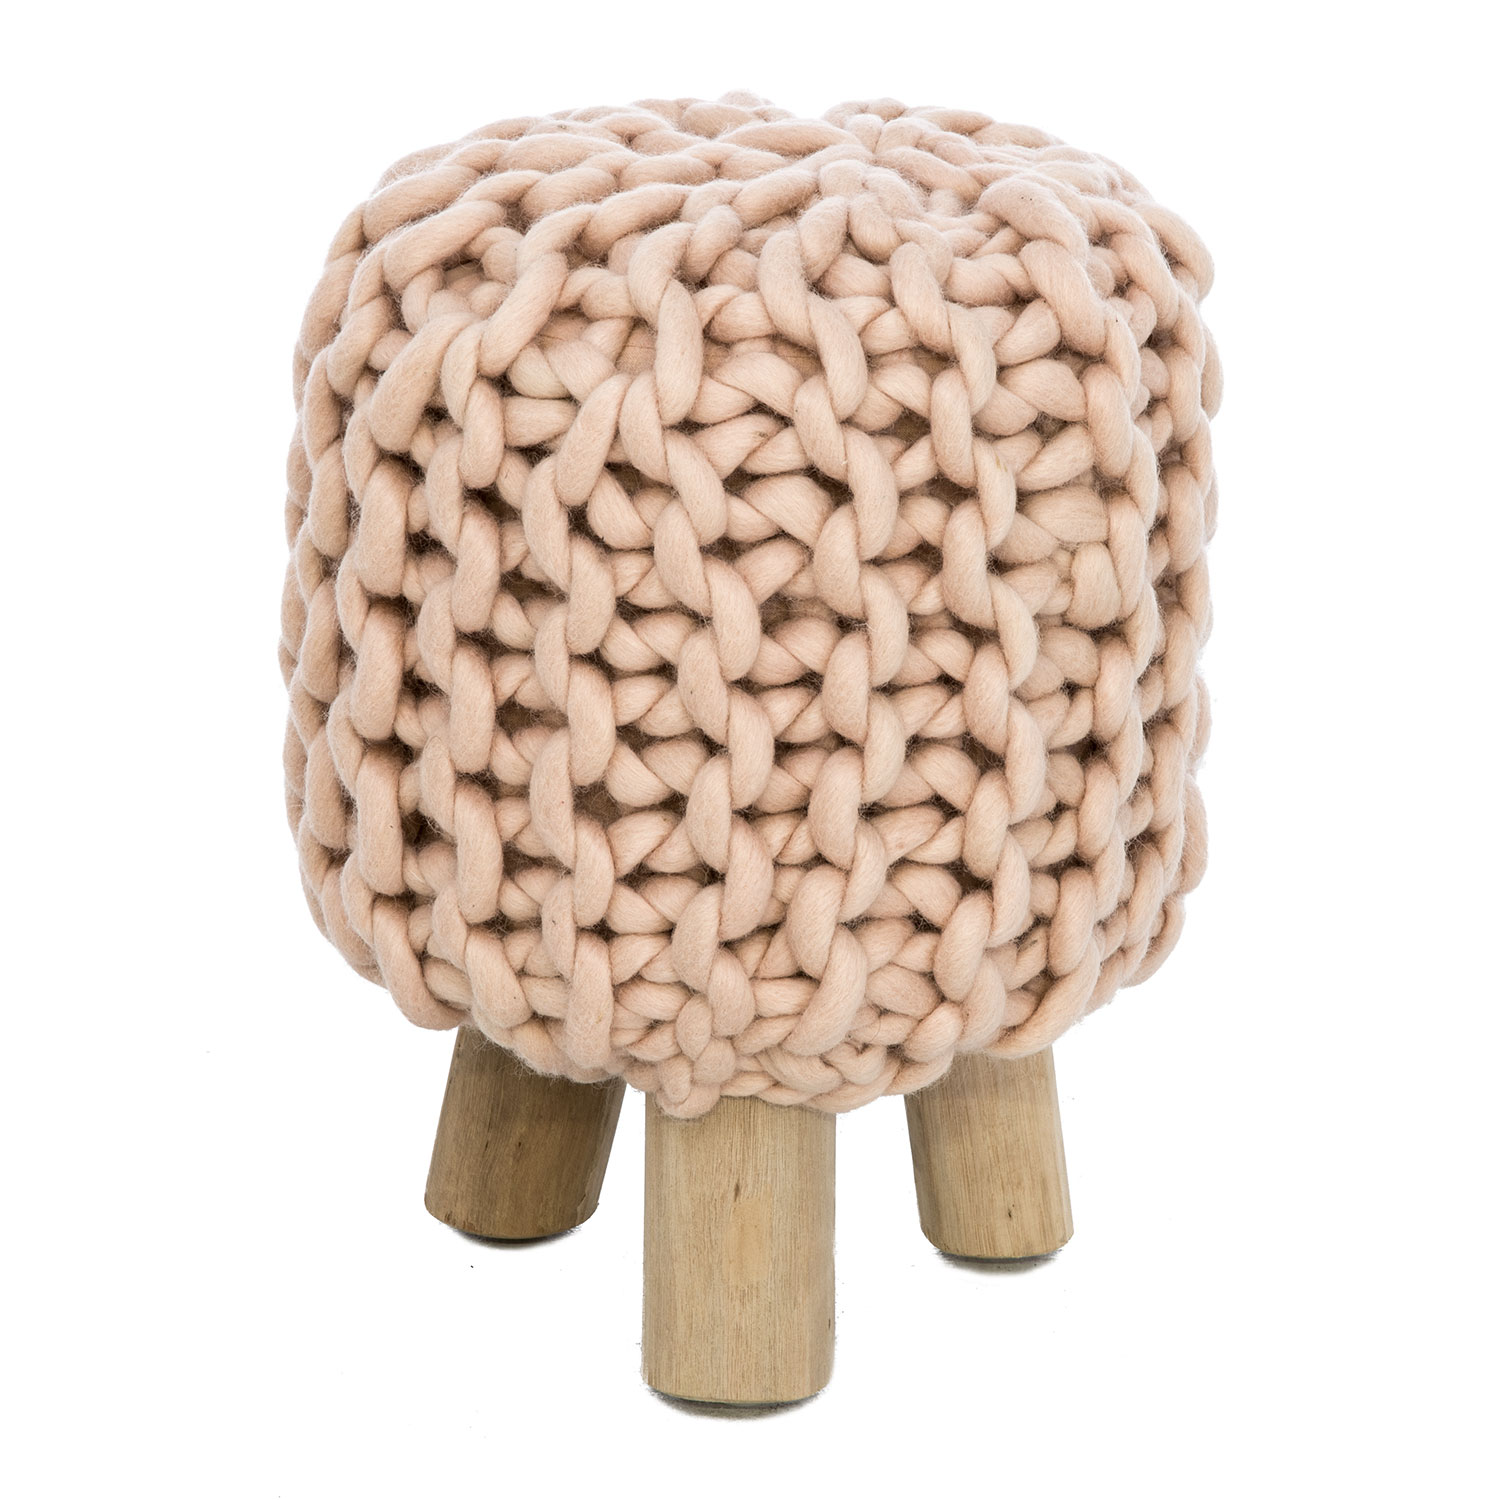 Image of Casa Wooden Knitted Wool Stool, Pink